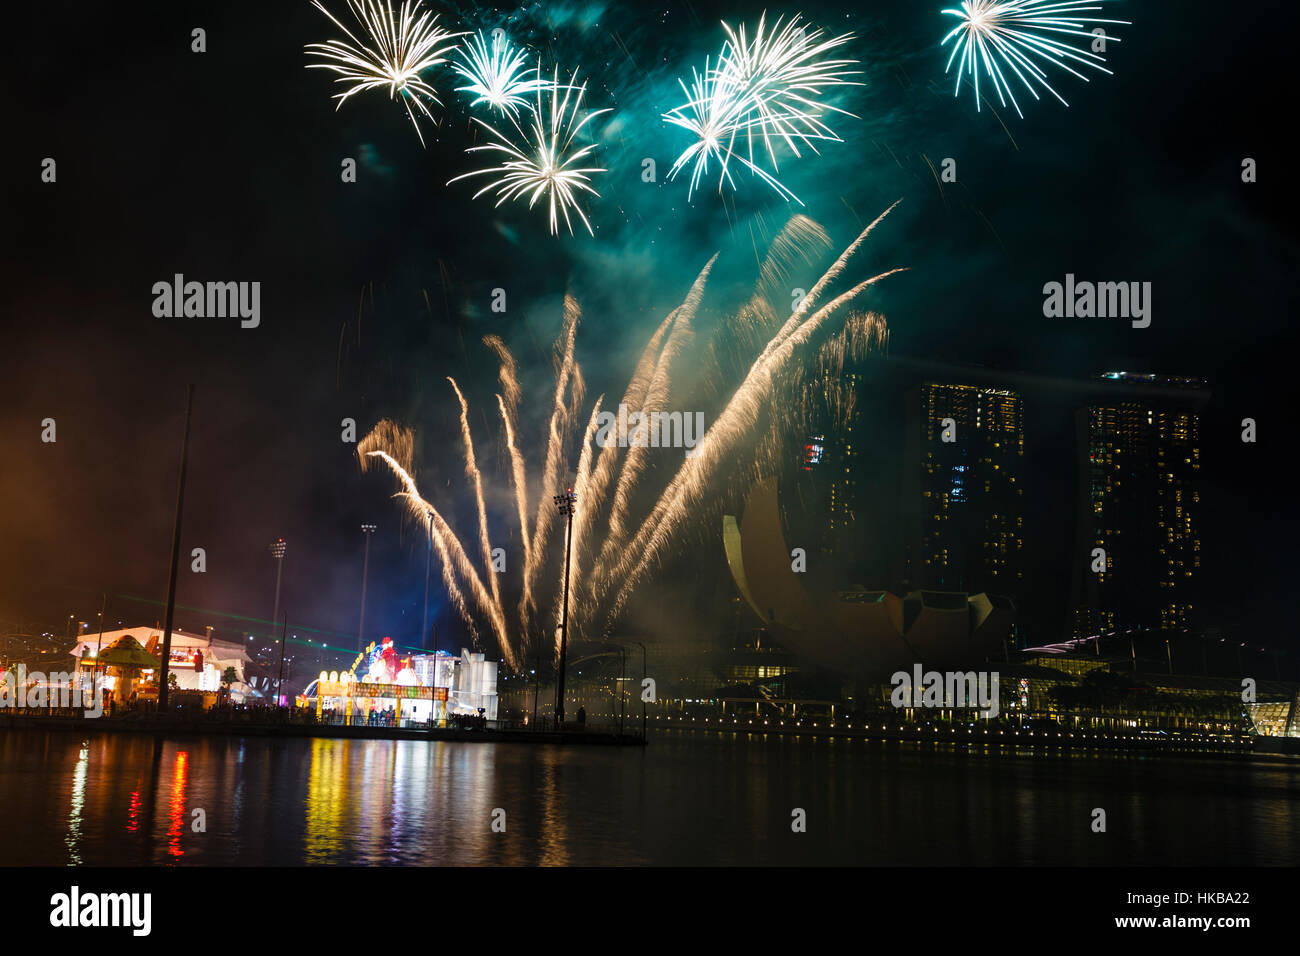 Singapore. 27th January 2017  The city of Singapore welcomed the Chinese New Year of the Rooster this evening with - Stock Image